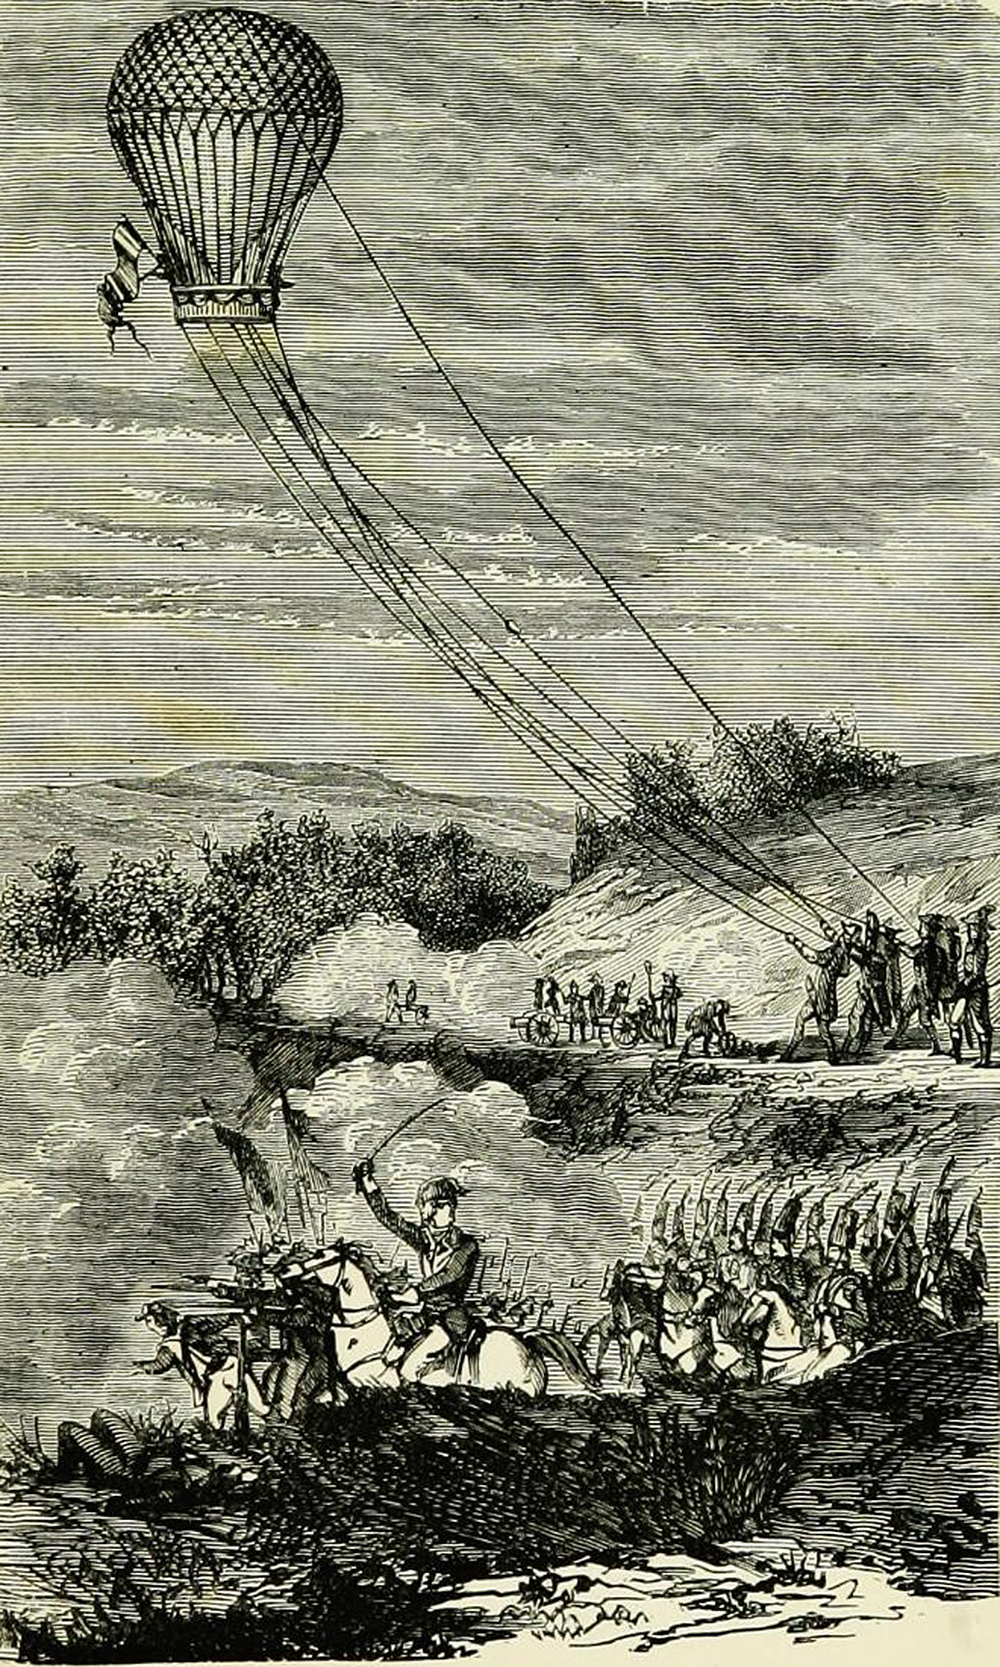 """Employment of balloon at the Battle of Fleurus, illustration from """"Wonderful balloon ascents: or, the conquest of the skies; a history of balloons and balloon voyages,"""" 1888. Wellcome Collection."""